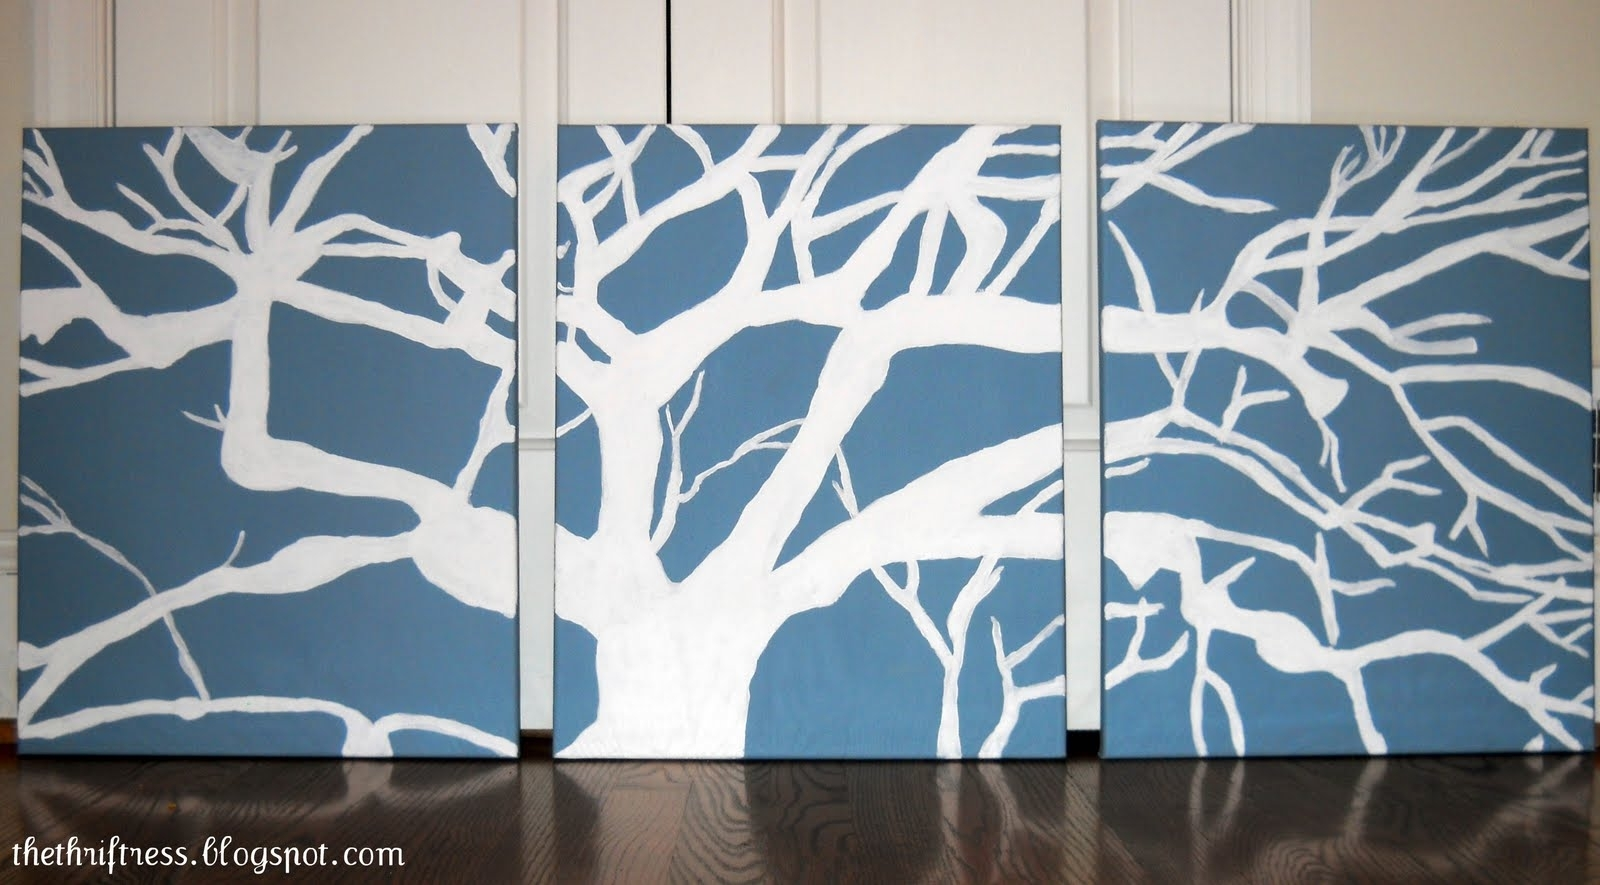 Diy Wall Art Stencils Paint Fabric – Dma Homes | #37854 For 2018 Canvas Wall Art With Fabric (View 8 of 15)